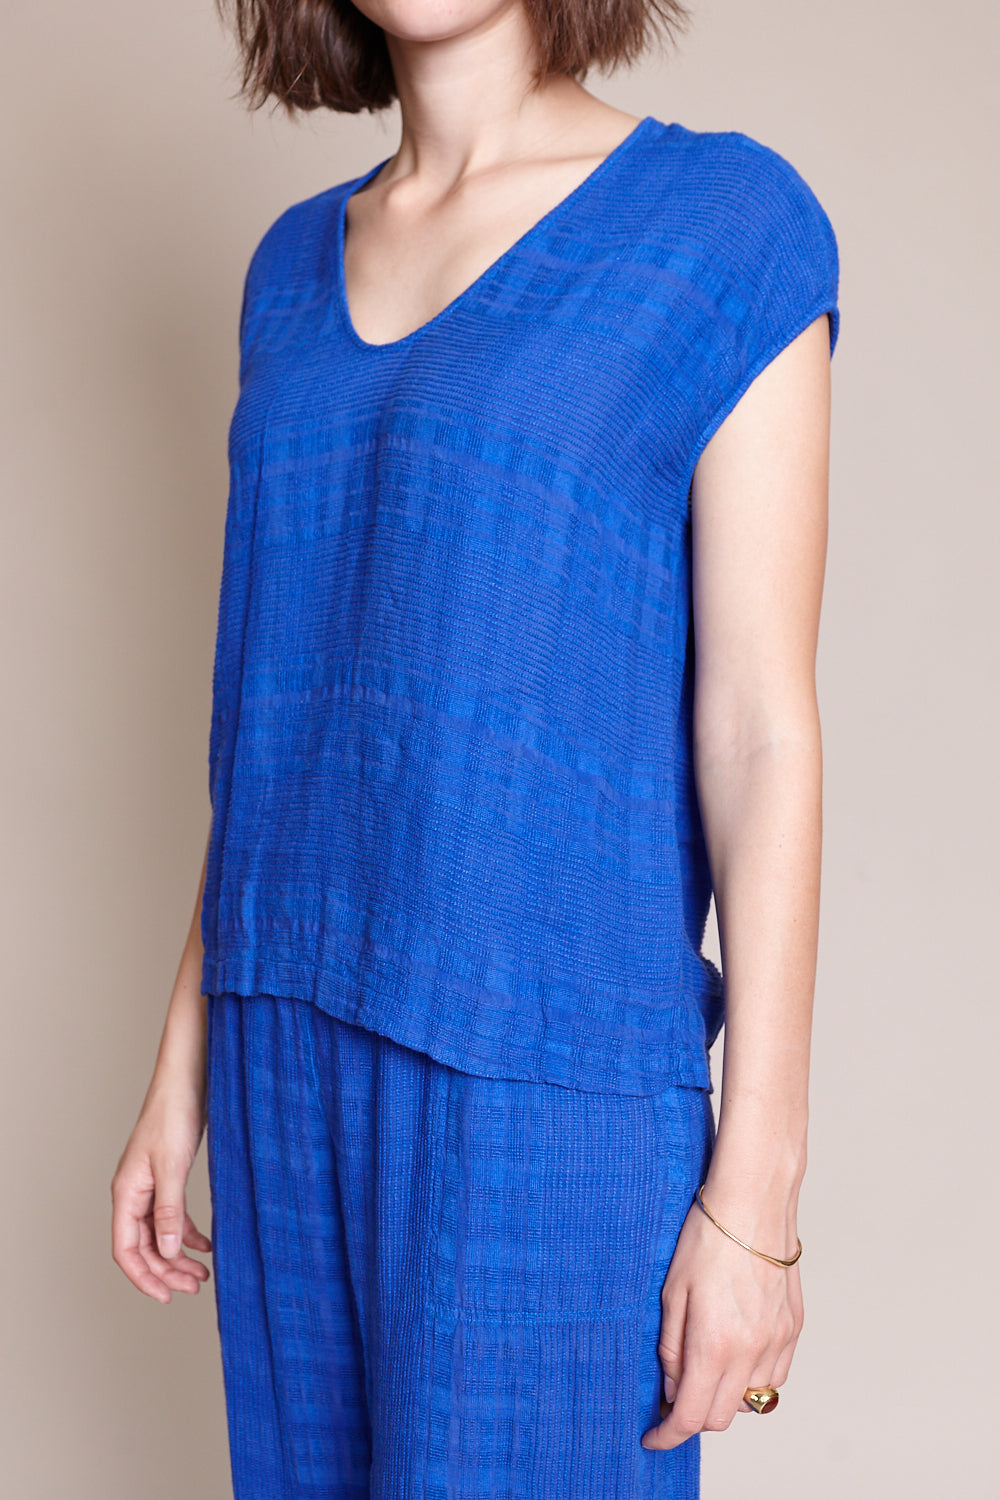 Shell Top in Cobalt